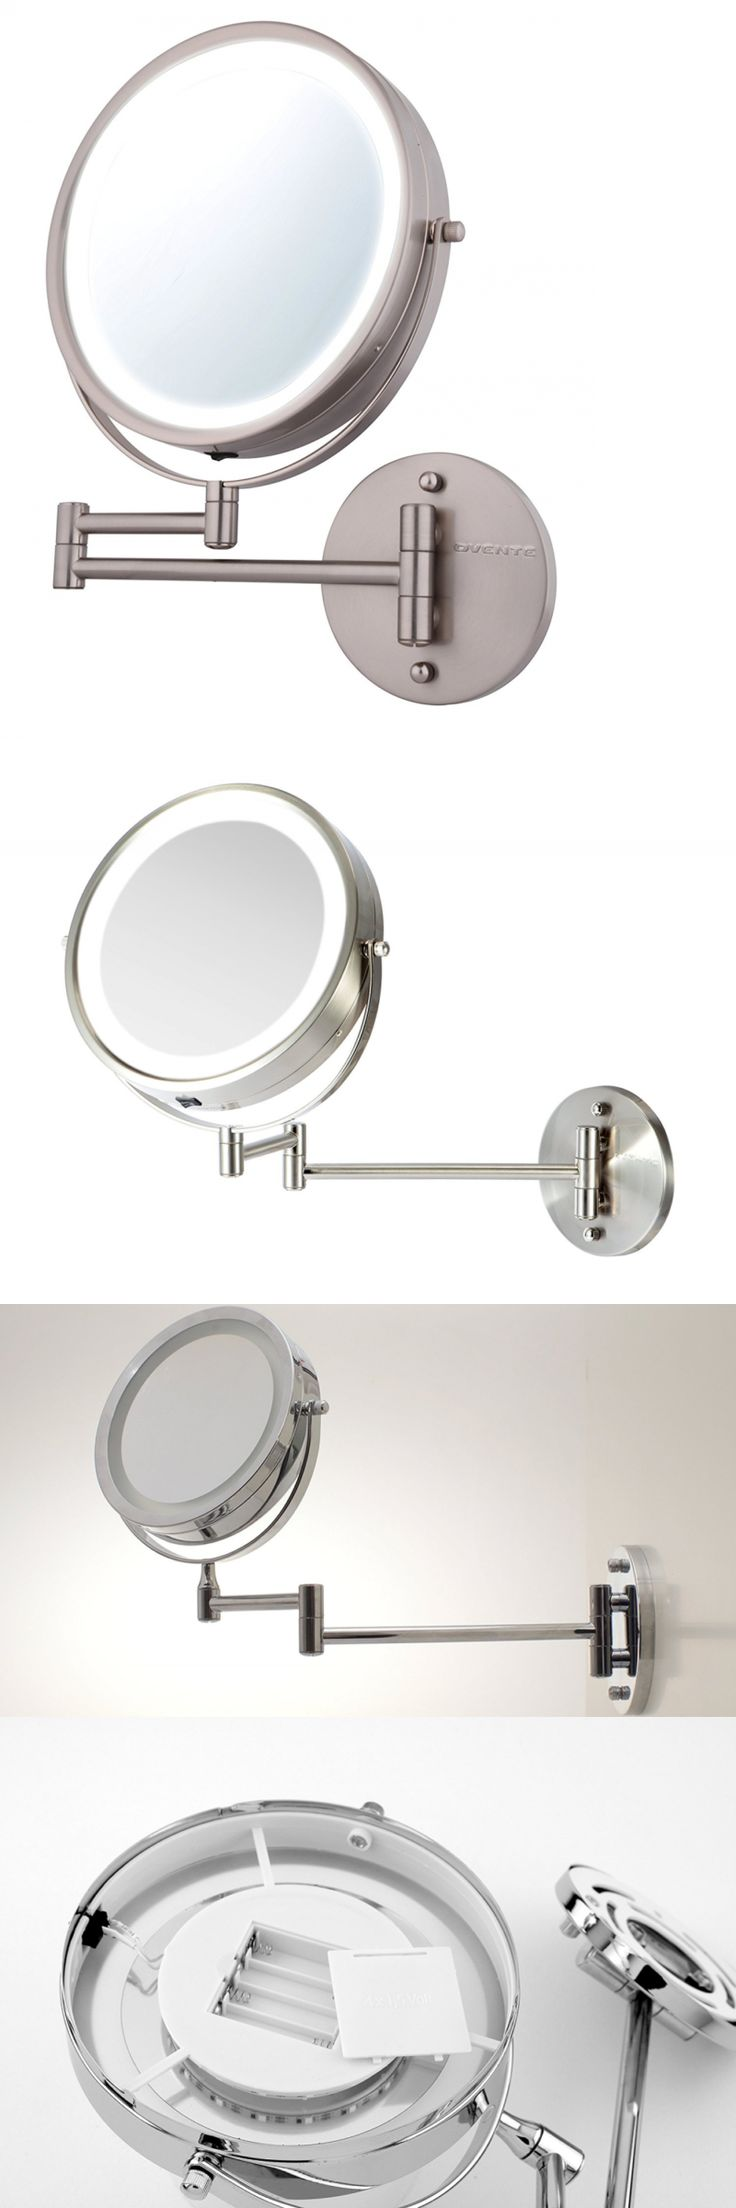 Top 6 bathroom mirrors ebay - Makeup Mirrors 8 5 Battery Operated Led Wall Mount Swivel Bathroom Makeup Magnifying Mirror